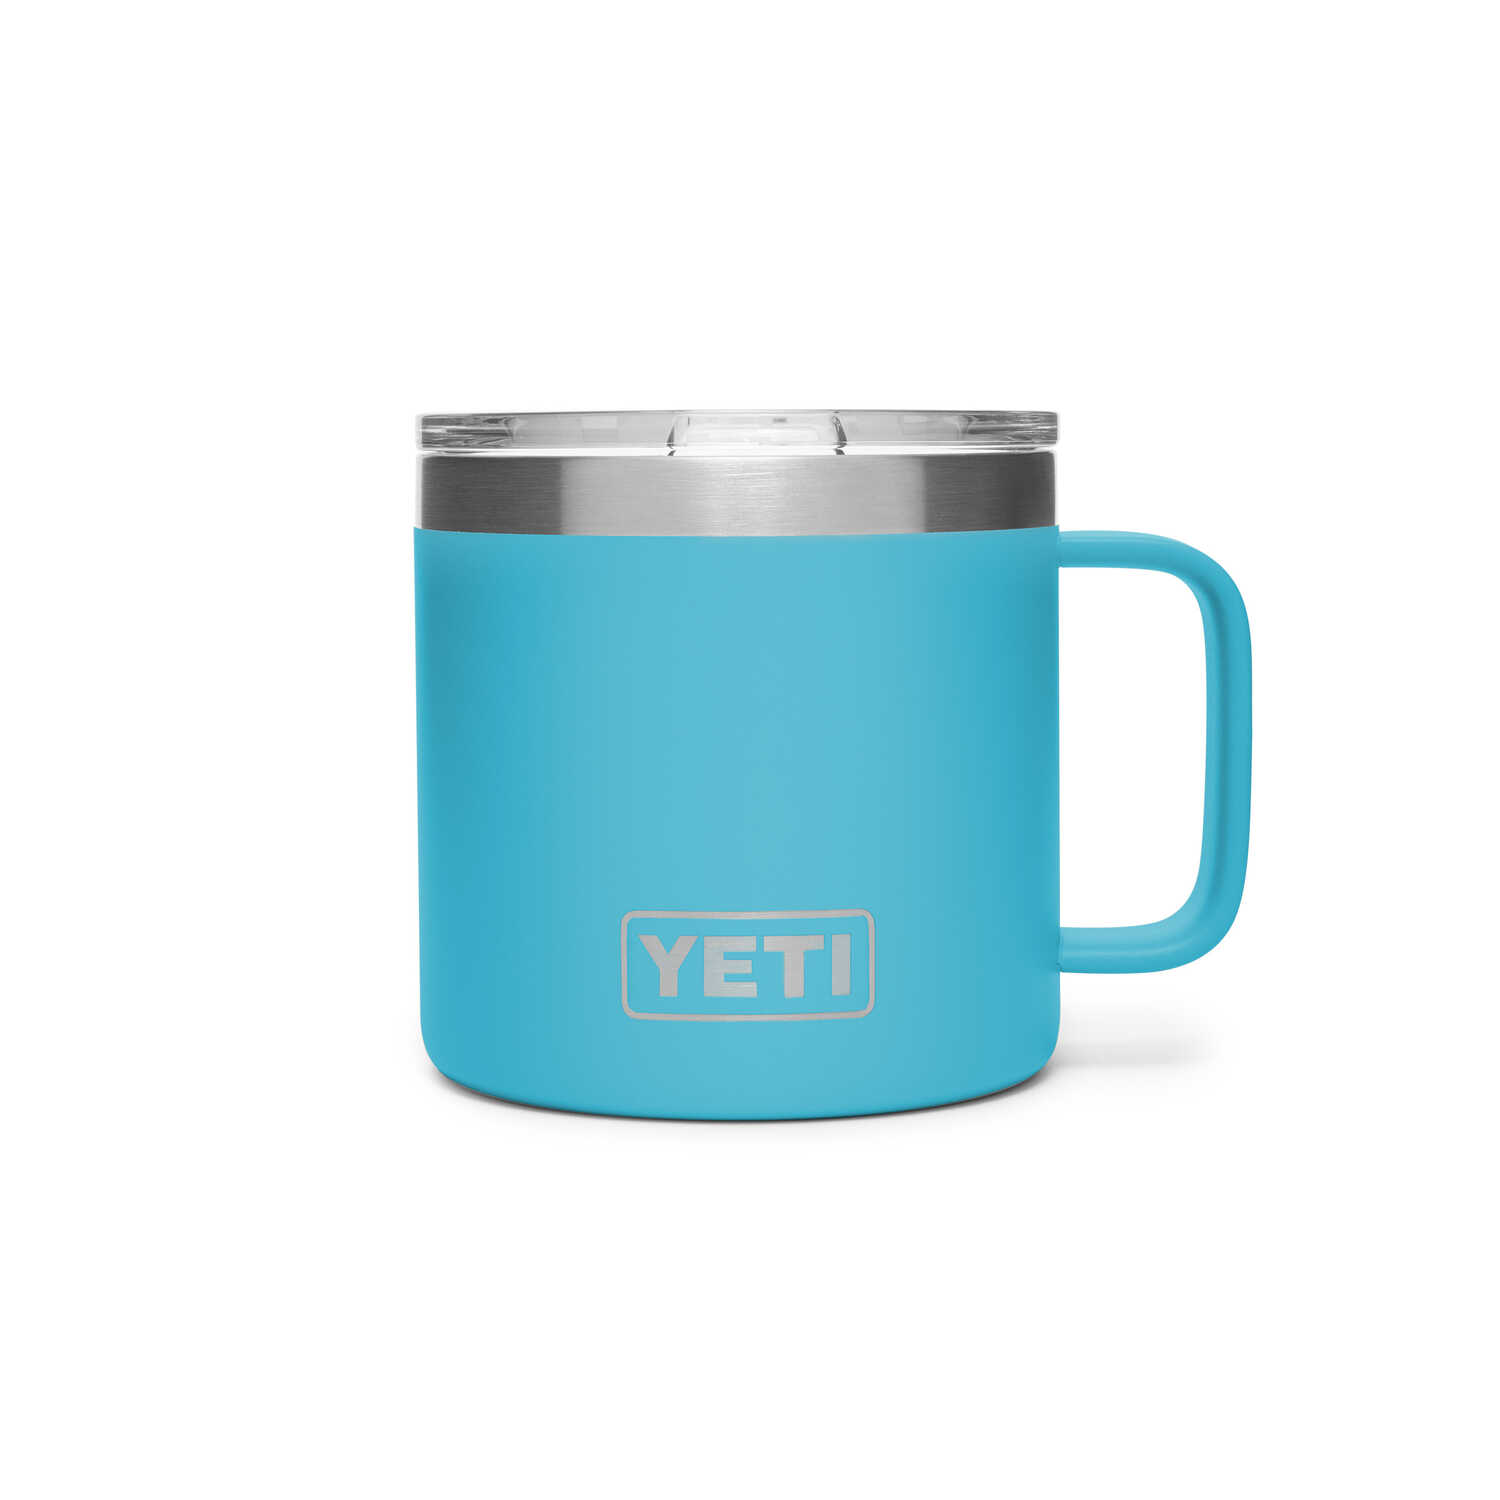 YETI  Rambler  Reef Blue  Stainless Steel  No Sweat  Mug  BPA Free 14 oz.